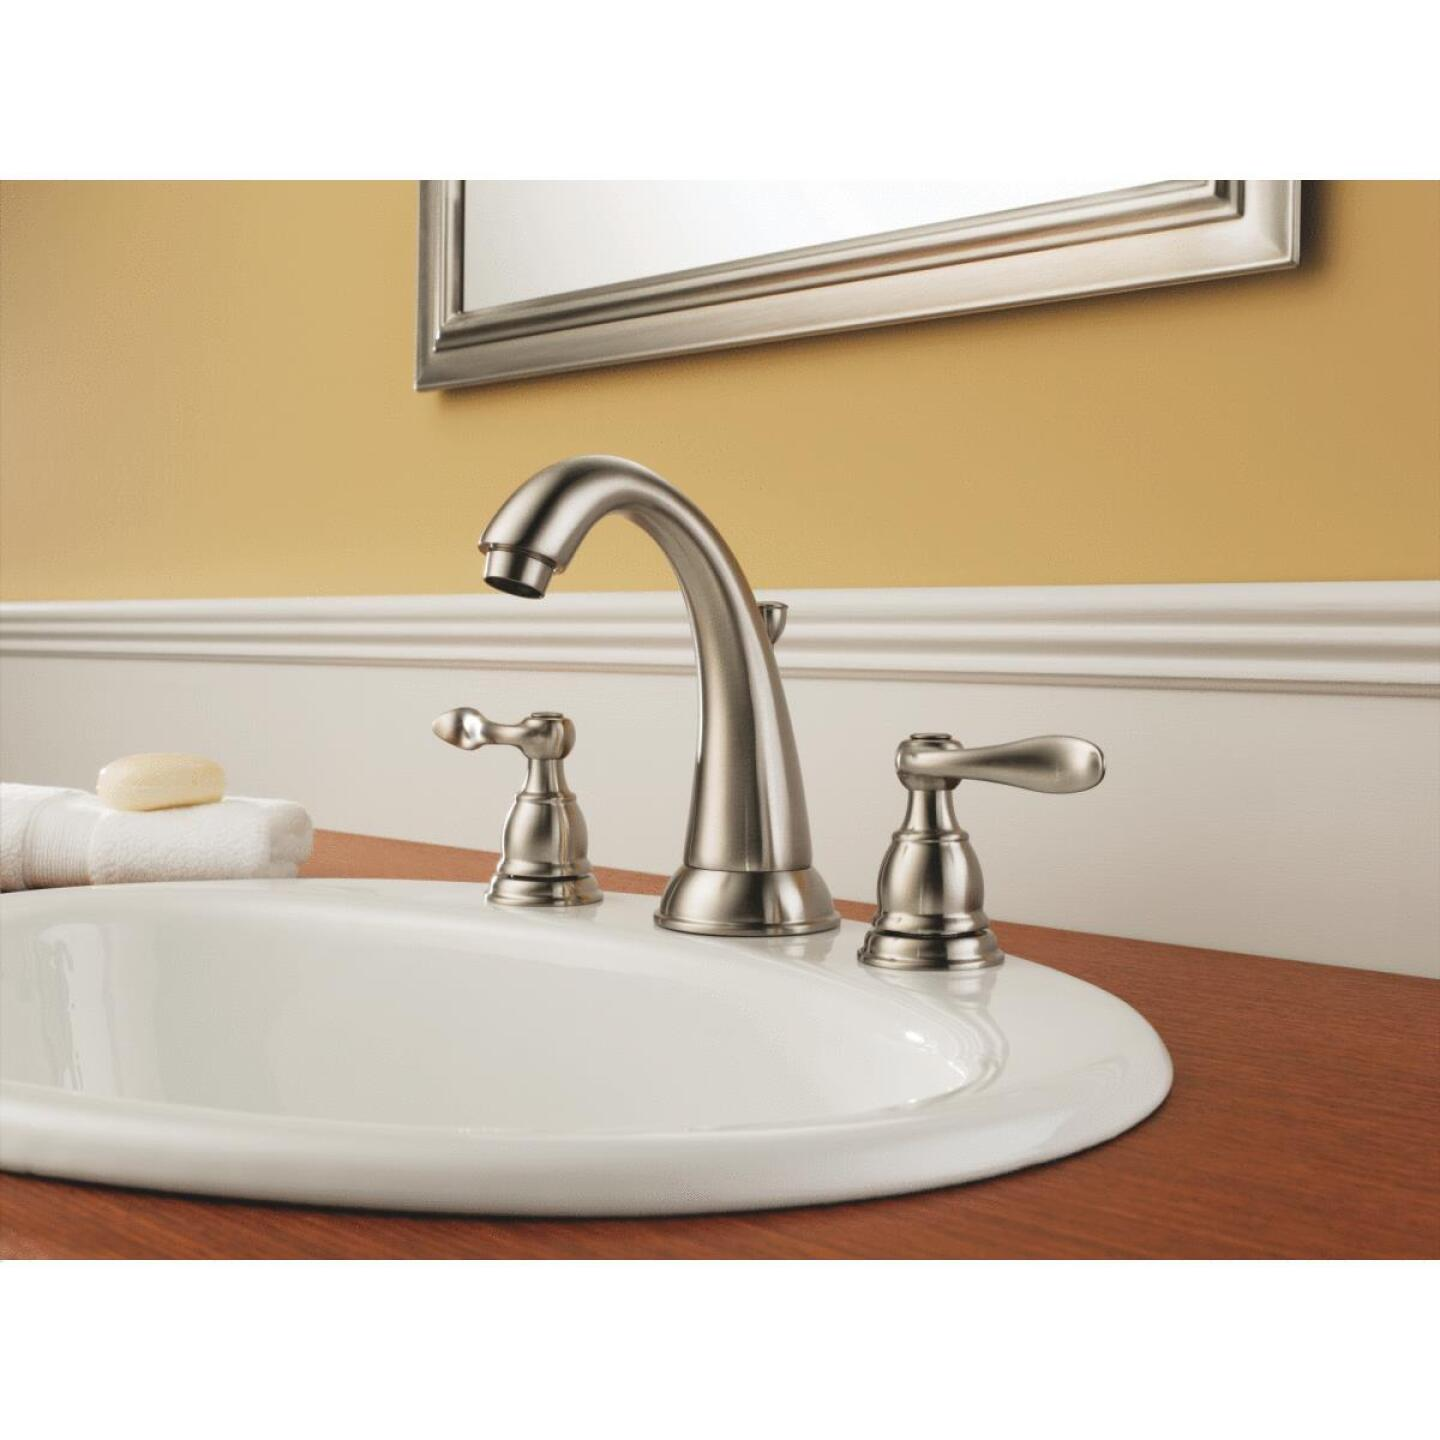 Delta Windmere Stainless 2-Handle Lever 6 In. to 16 In. Widespread Bathroom Faucet with Pop-Up Image 3